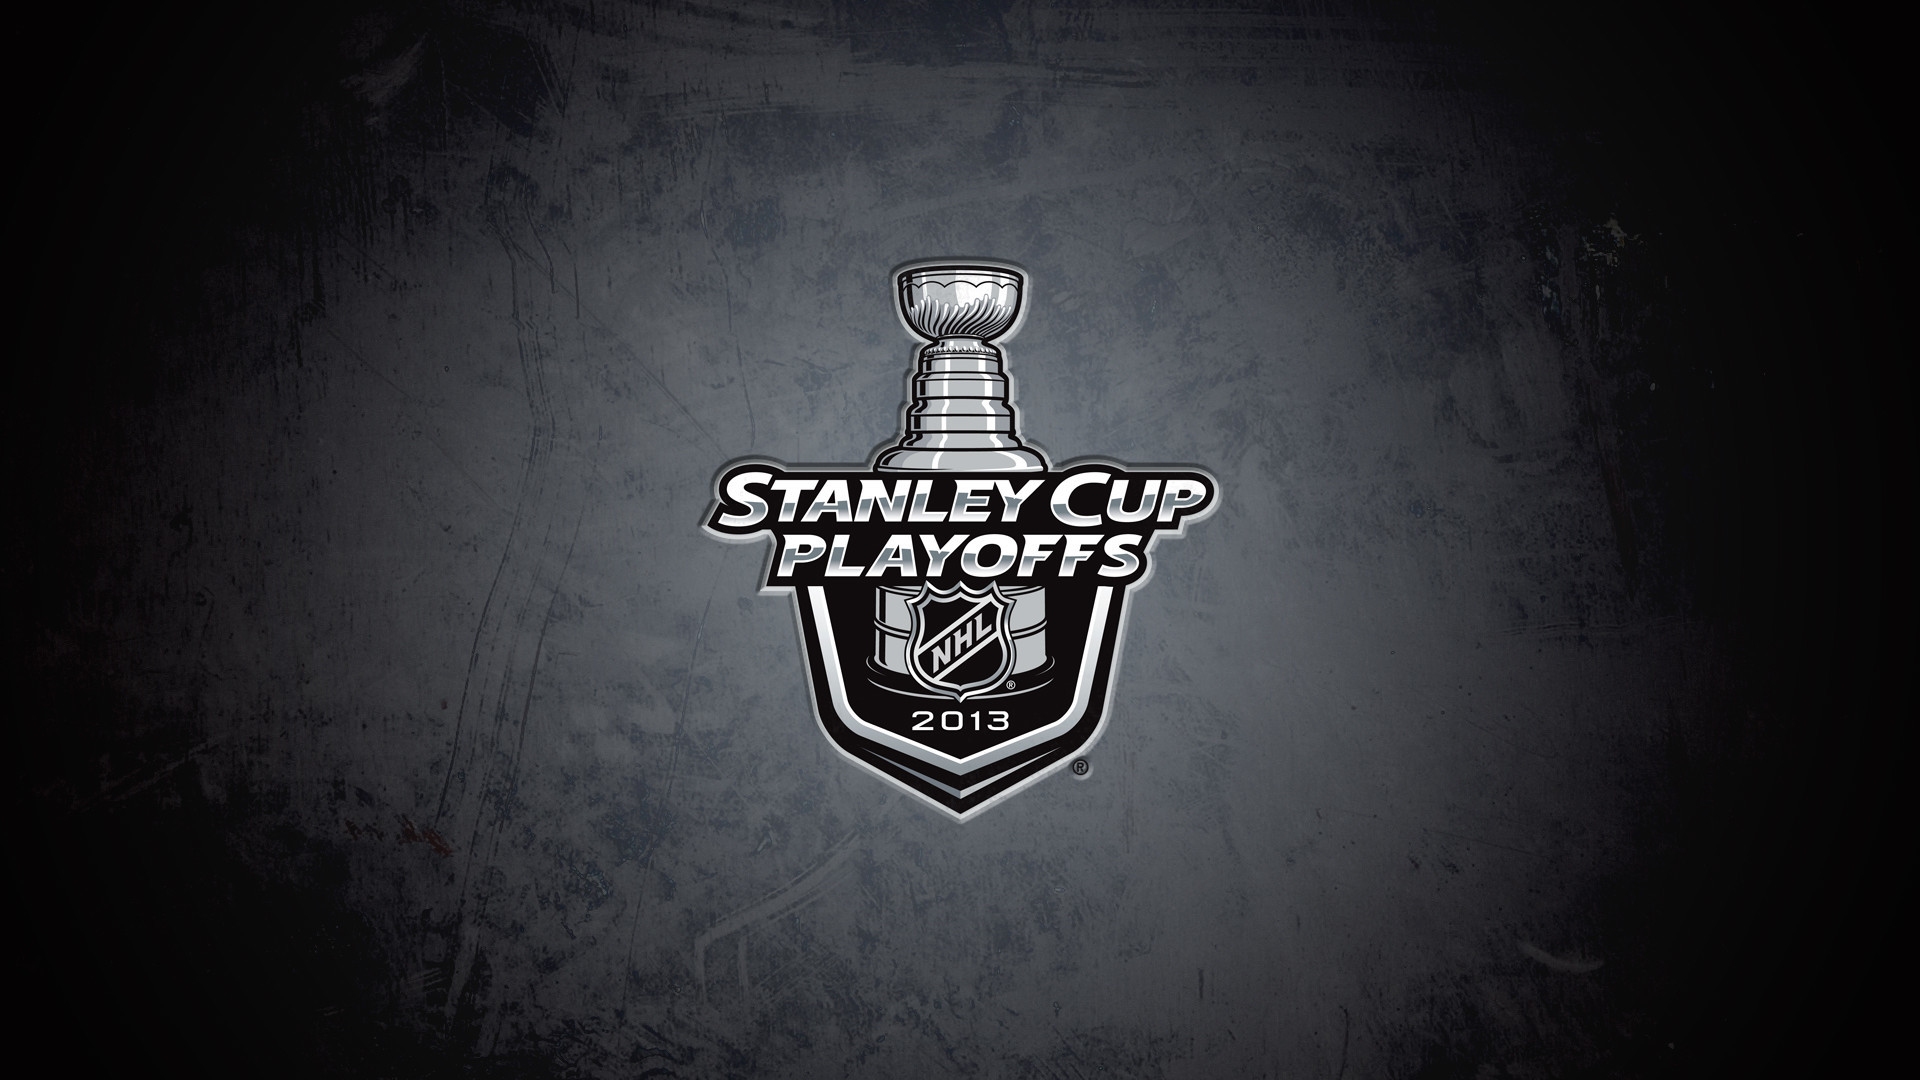 Nhl wallpaper 67 images 2880x1800 nhl wallpapers wallpaper hd wallpapers pinterest nhl wallpaper hd wallpaper and wallpaper sciox Choice Image